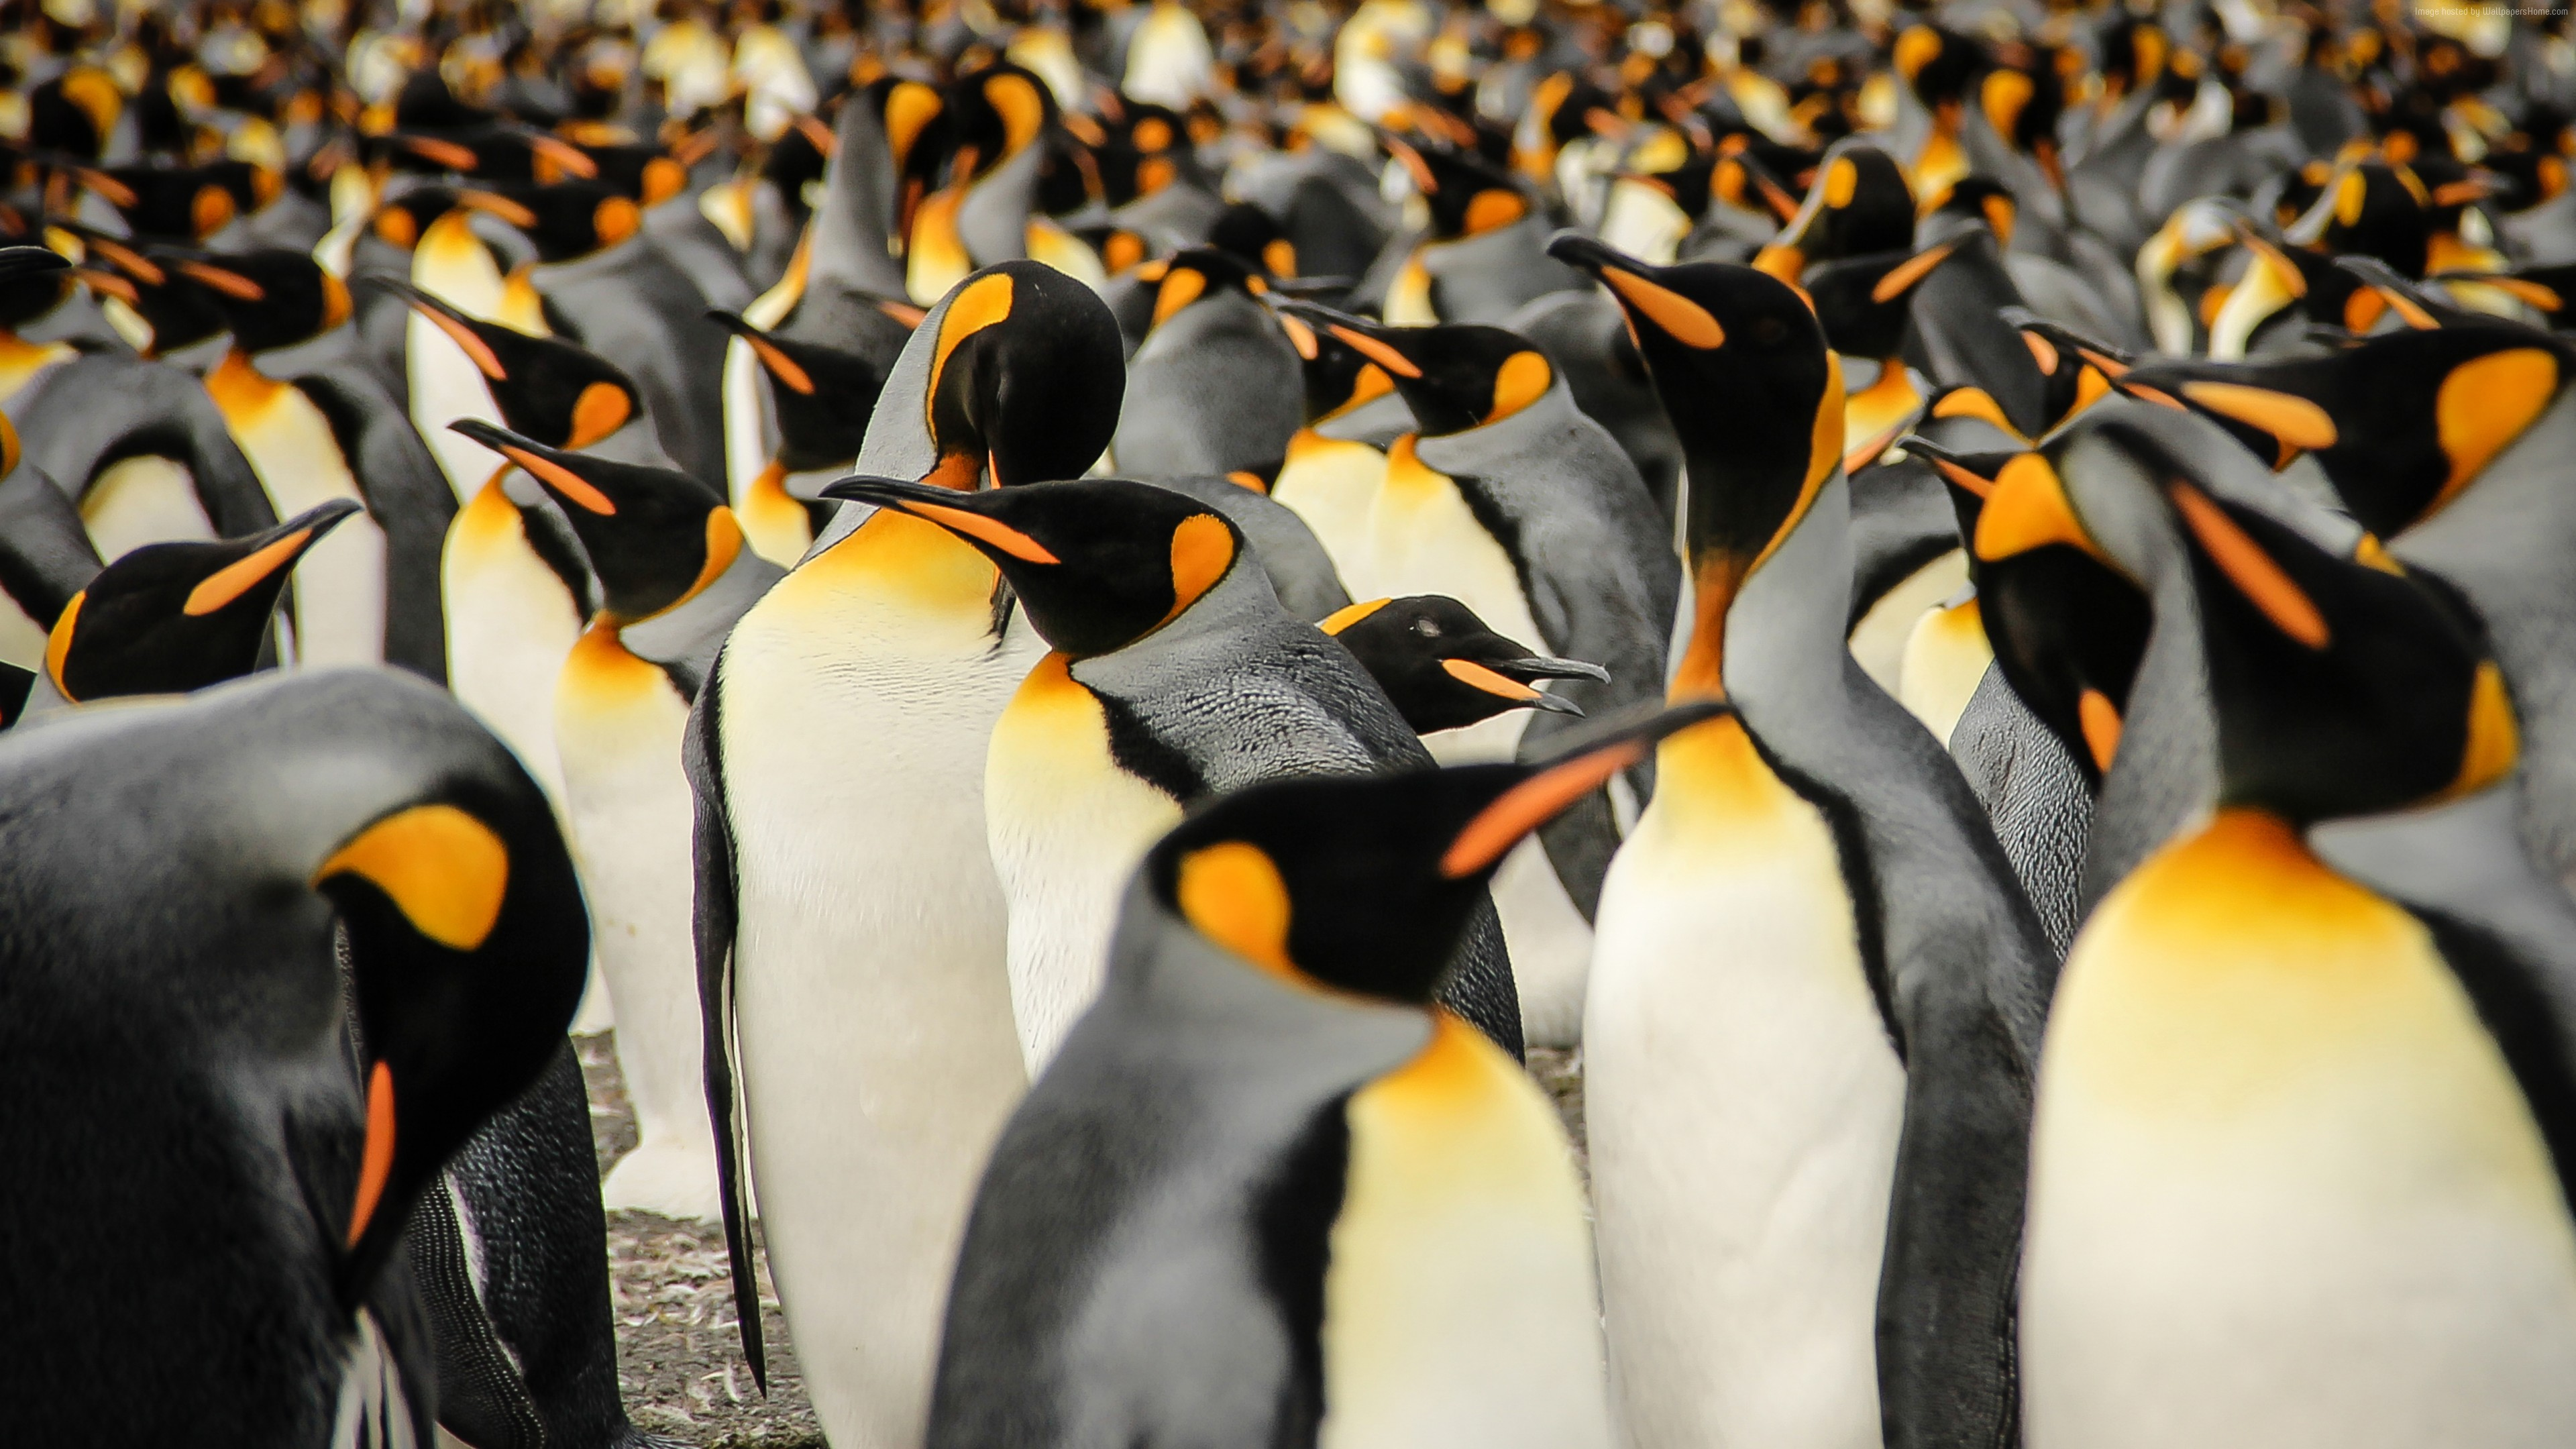 Wallpaper King penguins, South Georgia, birds, 2015 Sony World Photography Awards, Animals